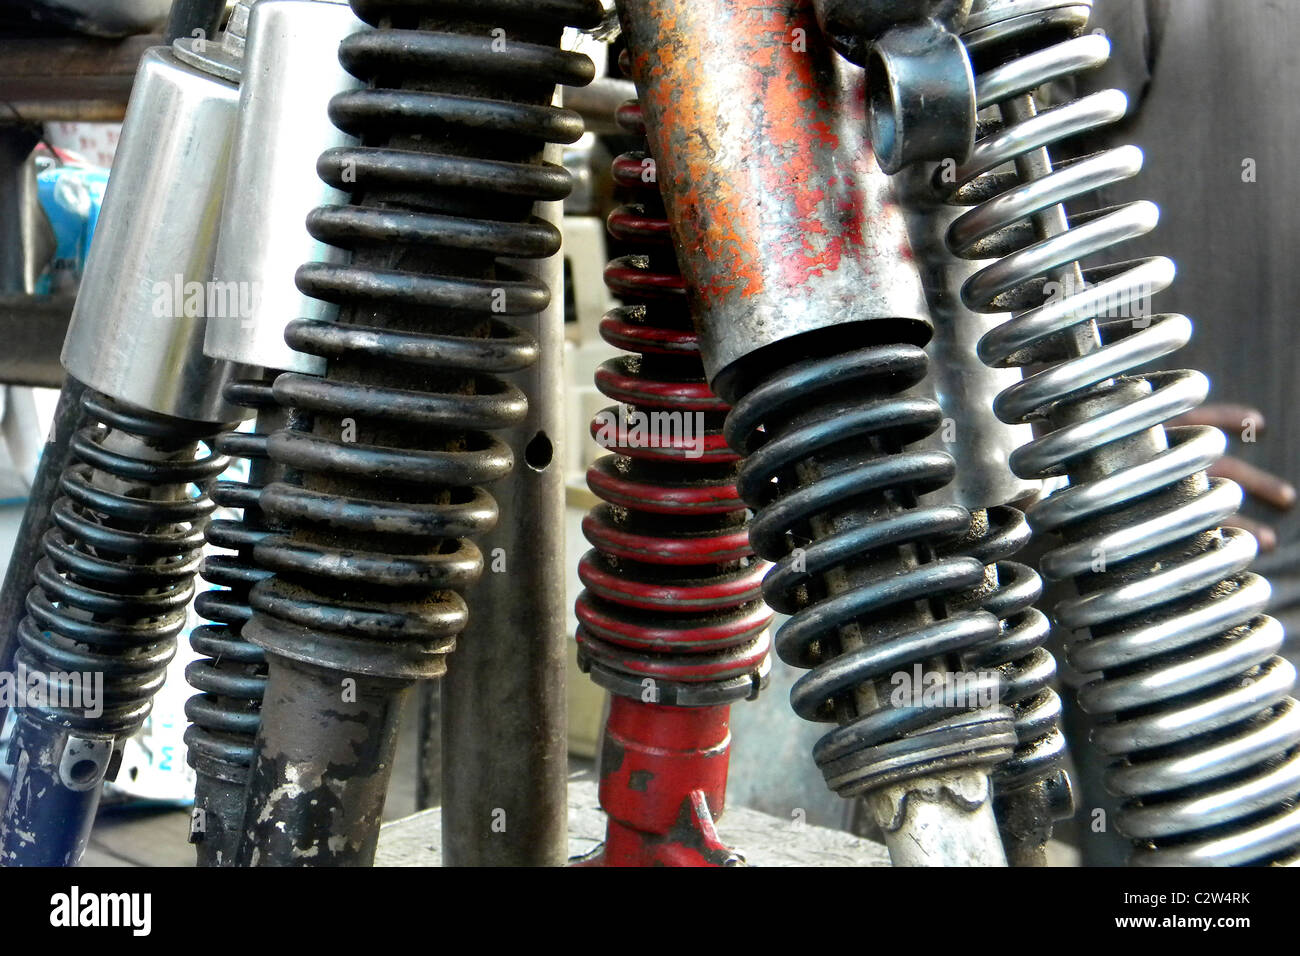 Car shock absorbers, New Delhi, India - Stock Image